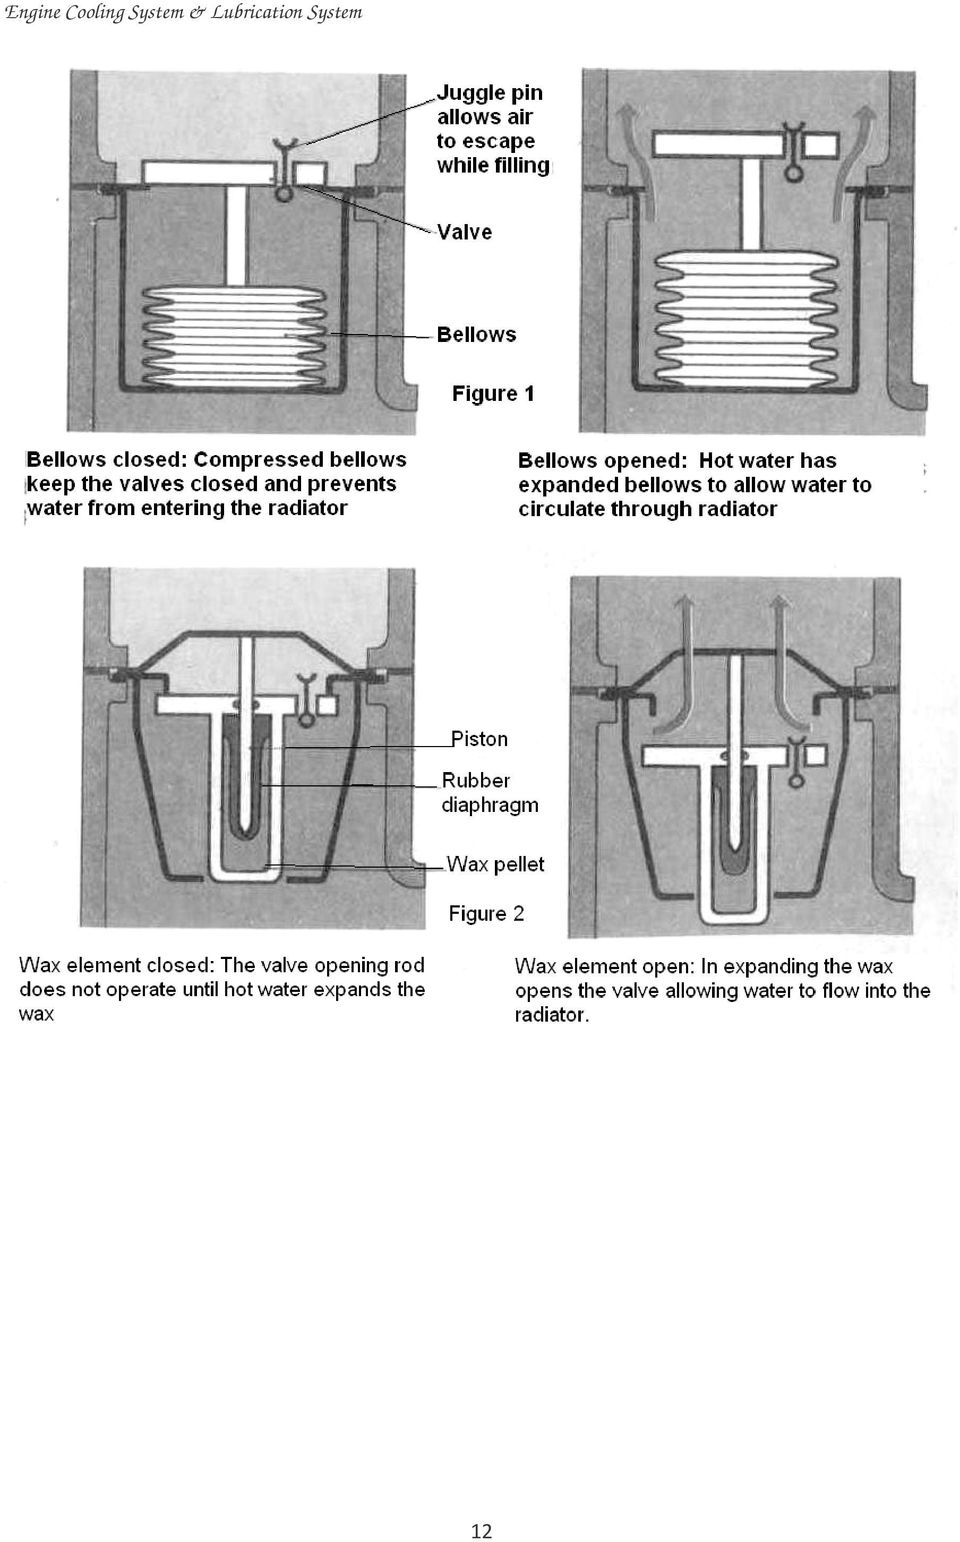 Engine Cooling System Pdf 1992 Escape Diagram 13 37 Lubrication Circuit Is One Of The Most Important Ones In Cannot Run Smoothly For More Than A Few Minutes